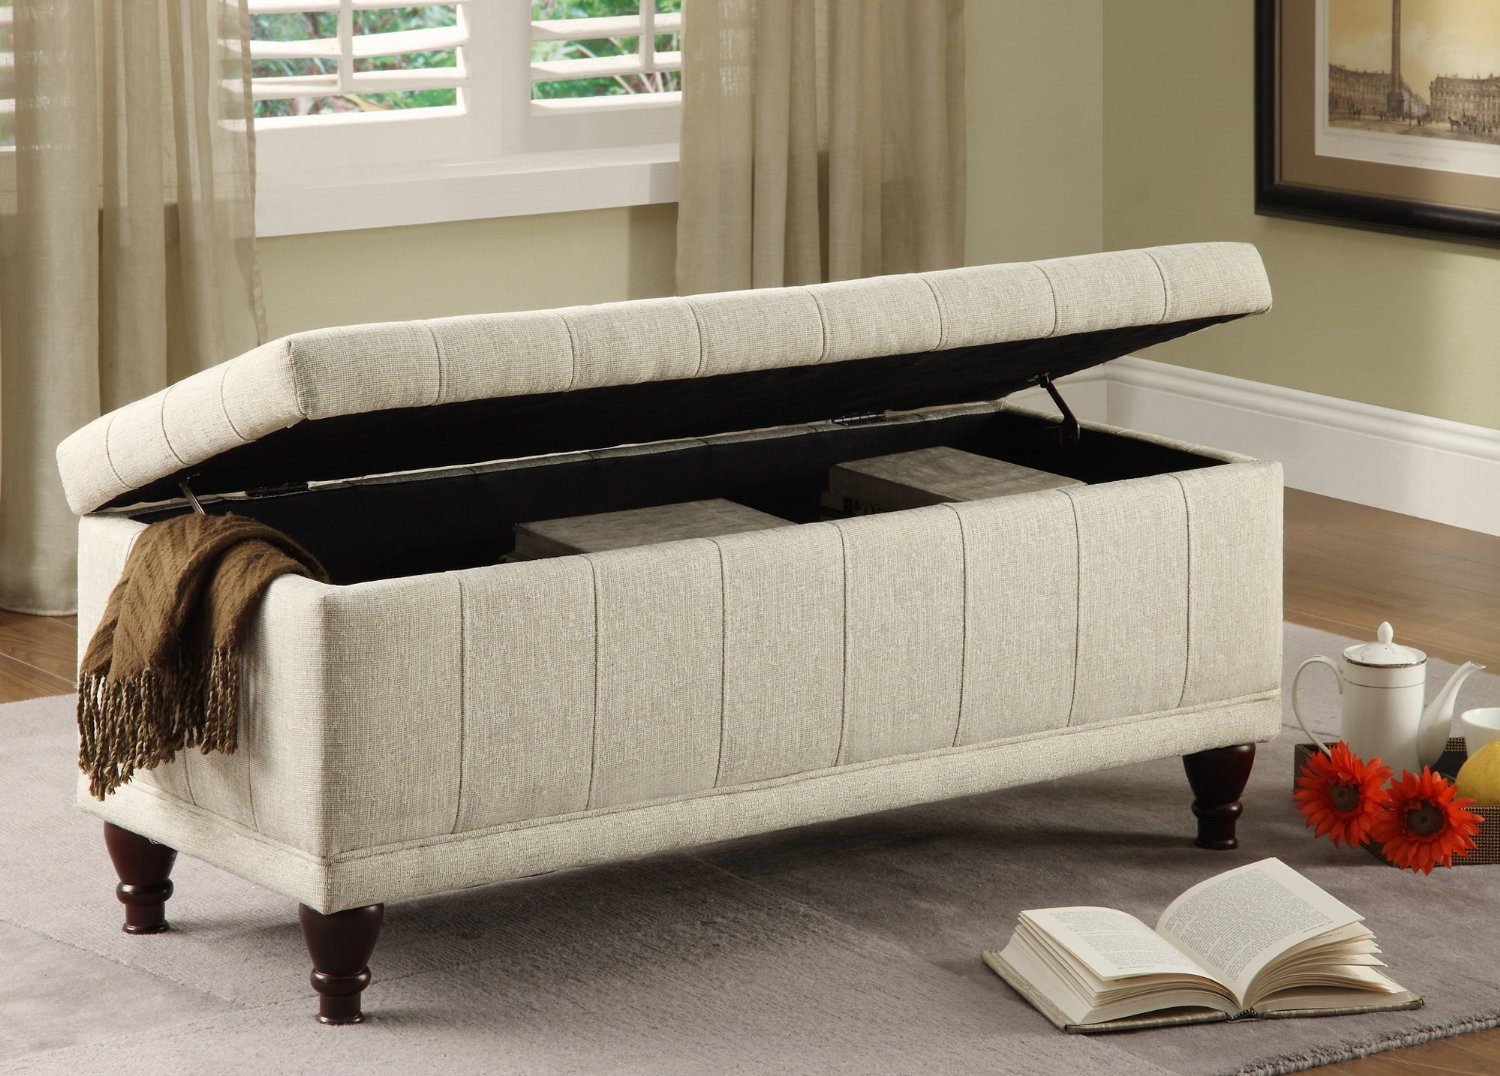 bedroom storage furniture. Big White Bench Of Bedroom With Grey Carpet Benches with Storage Ideas  HomesFeed